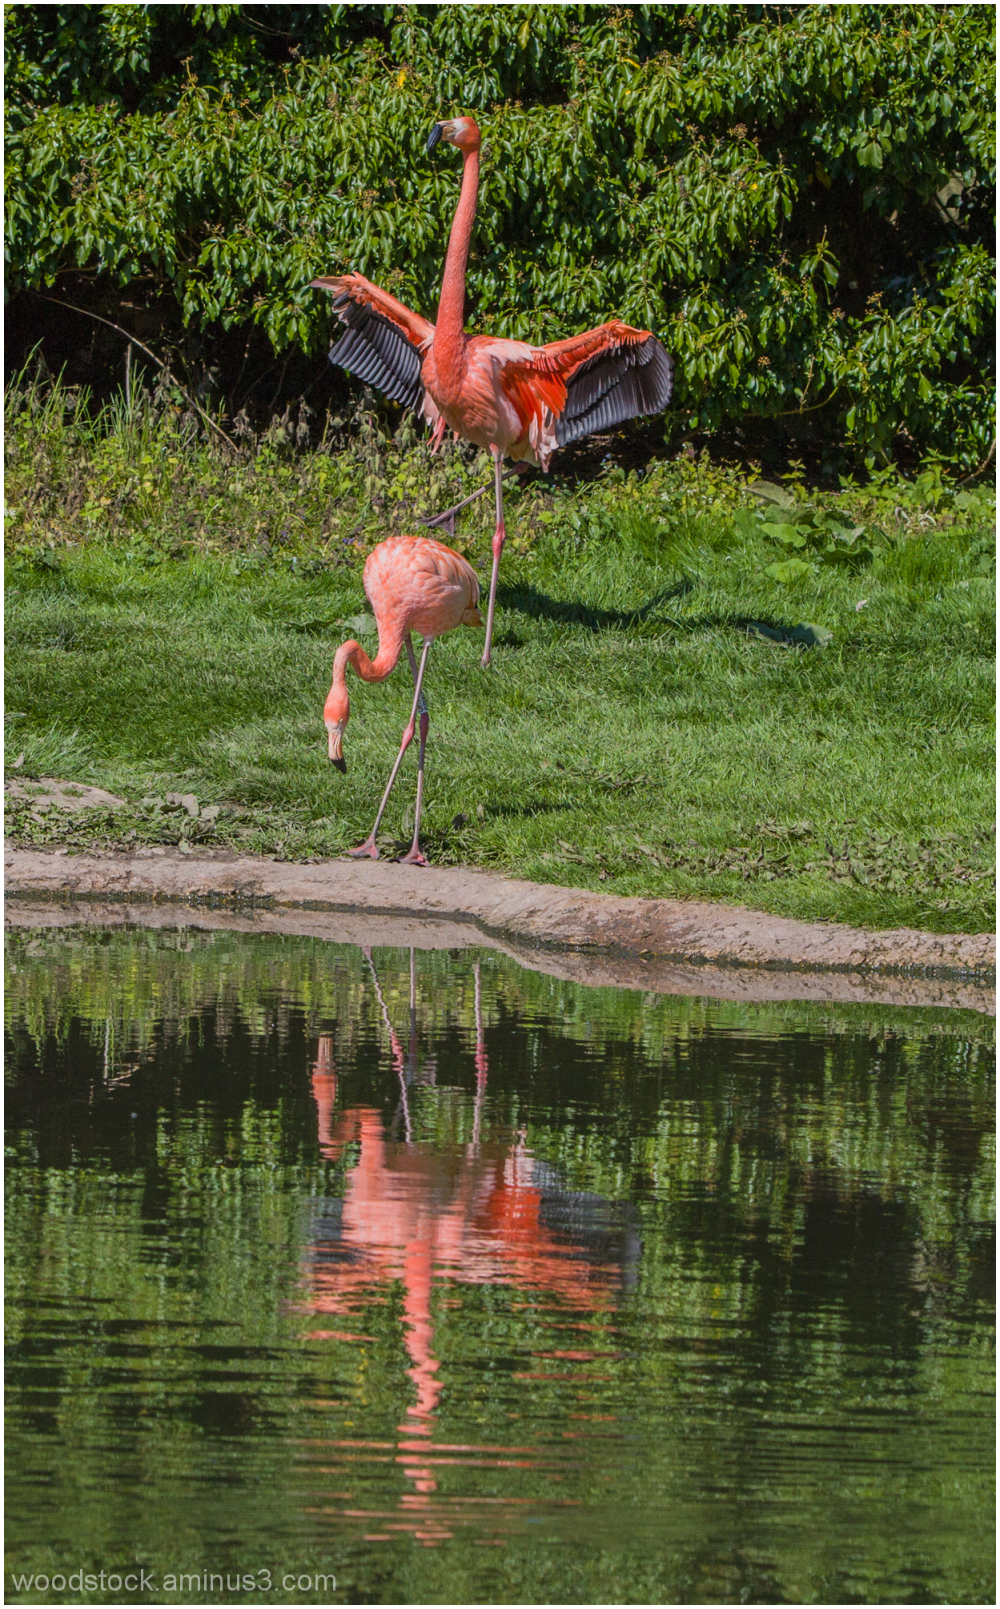 Flamingo at Slimbridge